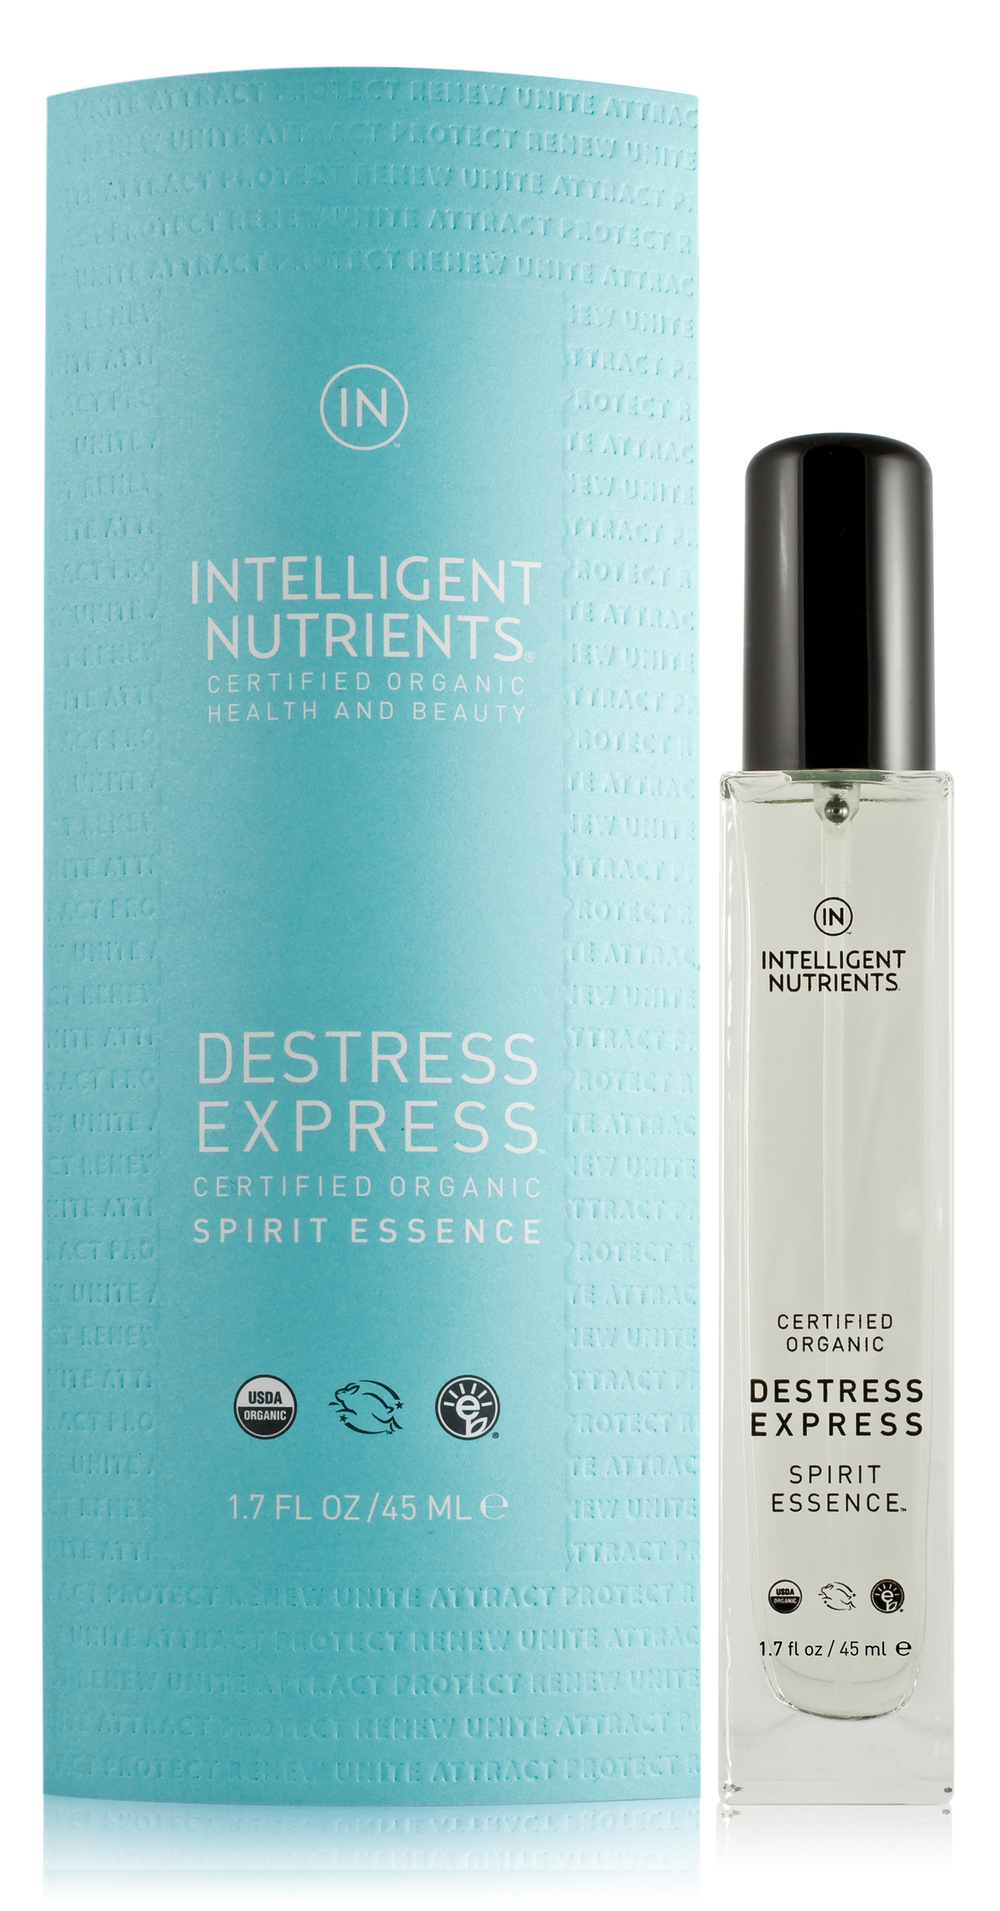 Destress Express™ Spirit Essence (DKK380/45ml)